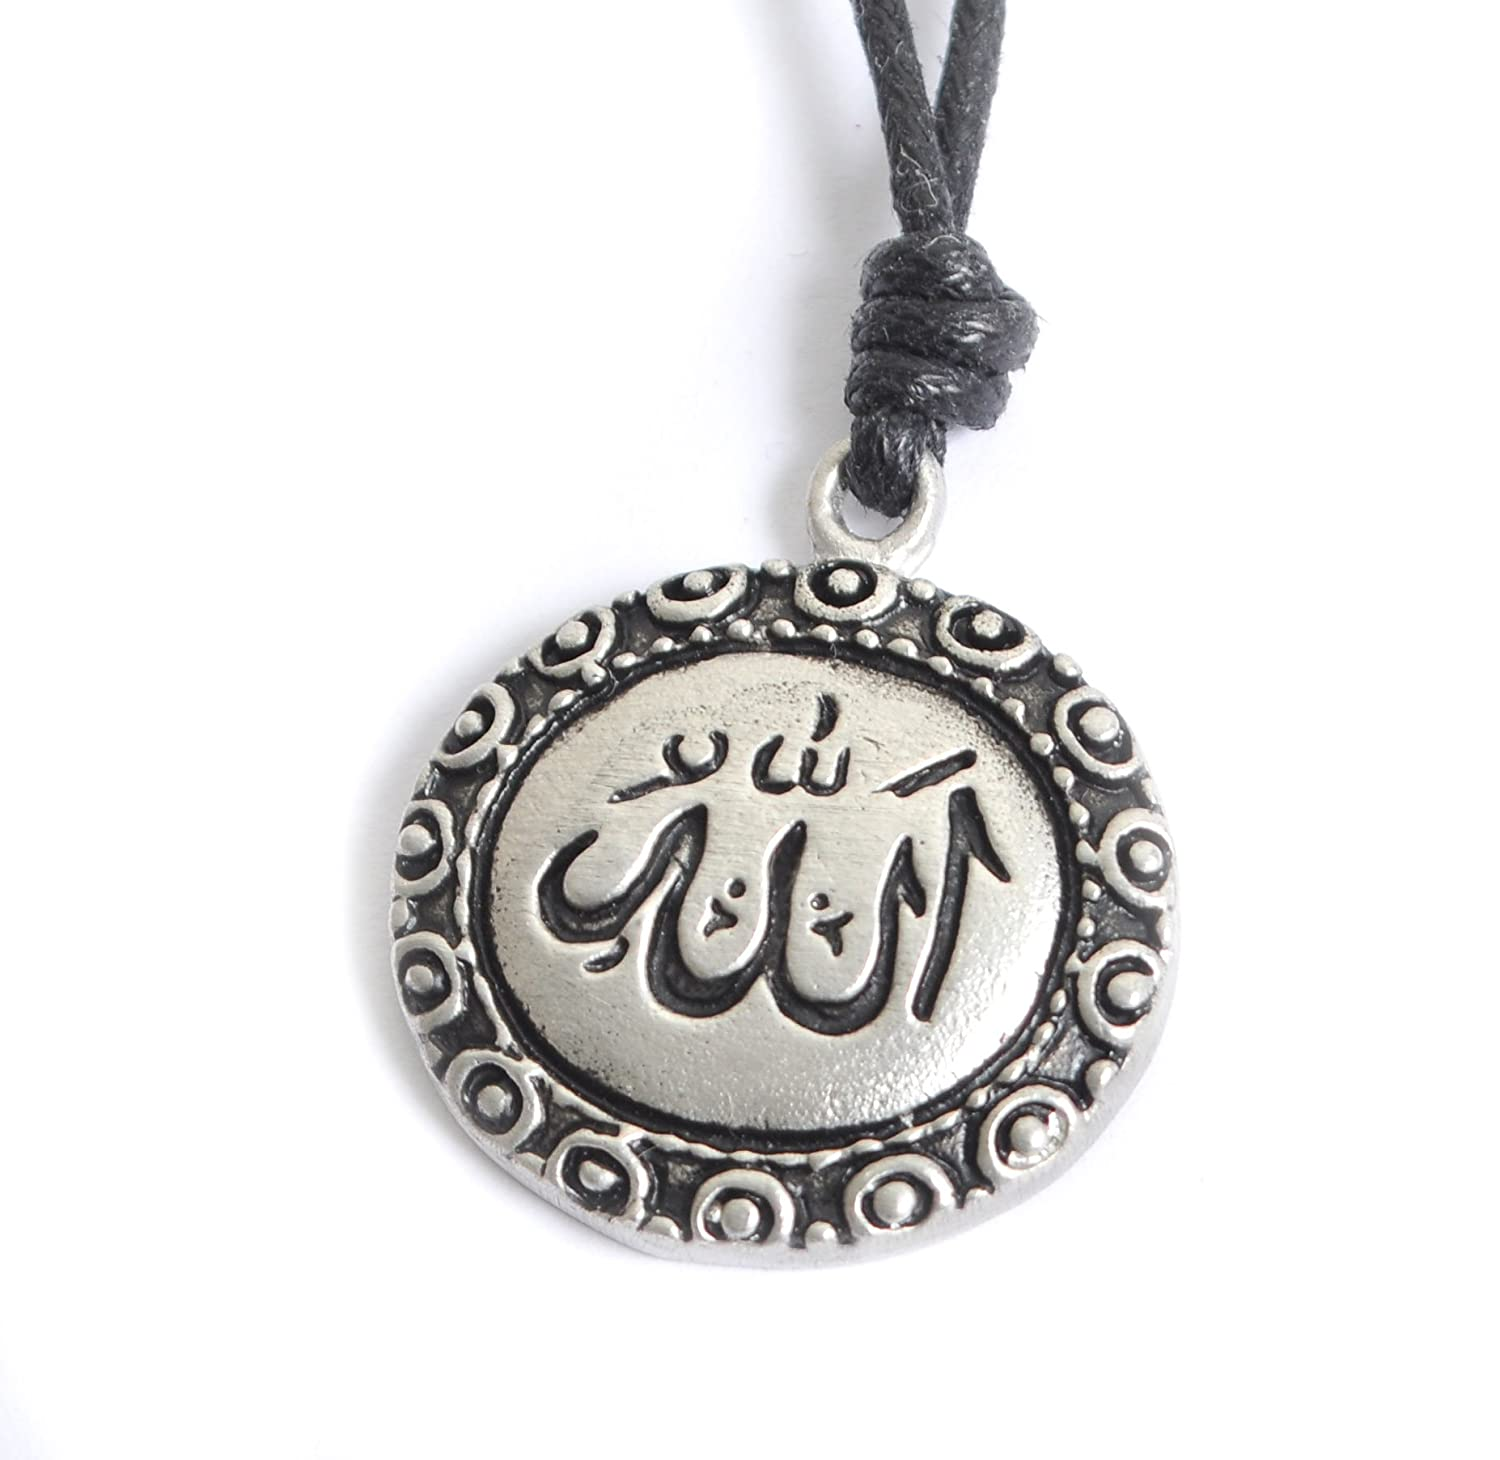 Amazon islam allah muslim quran silver pewter charm necklace amazon islam allah muslim quran silver pewter charm necklace pendant jewelry vietguild jewelry aloadofball Images